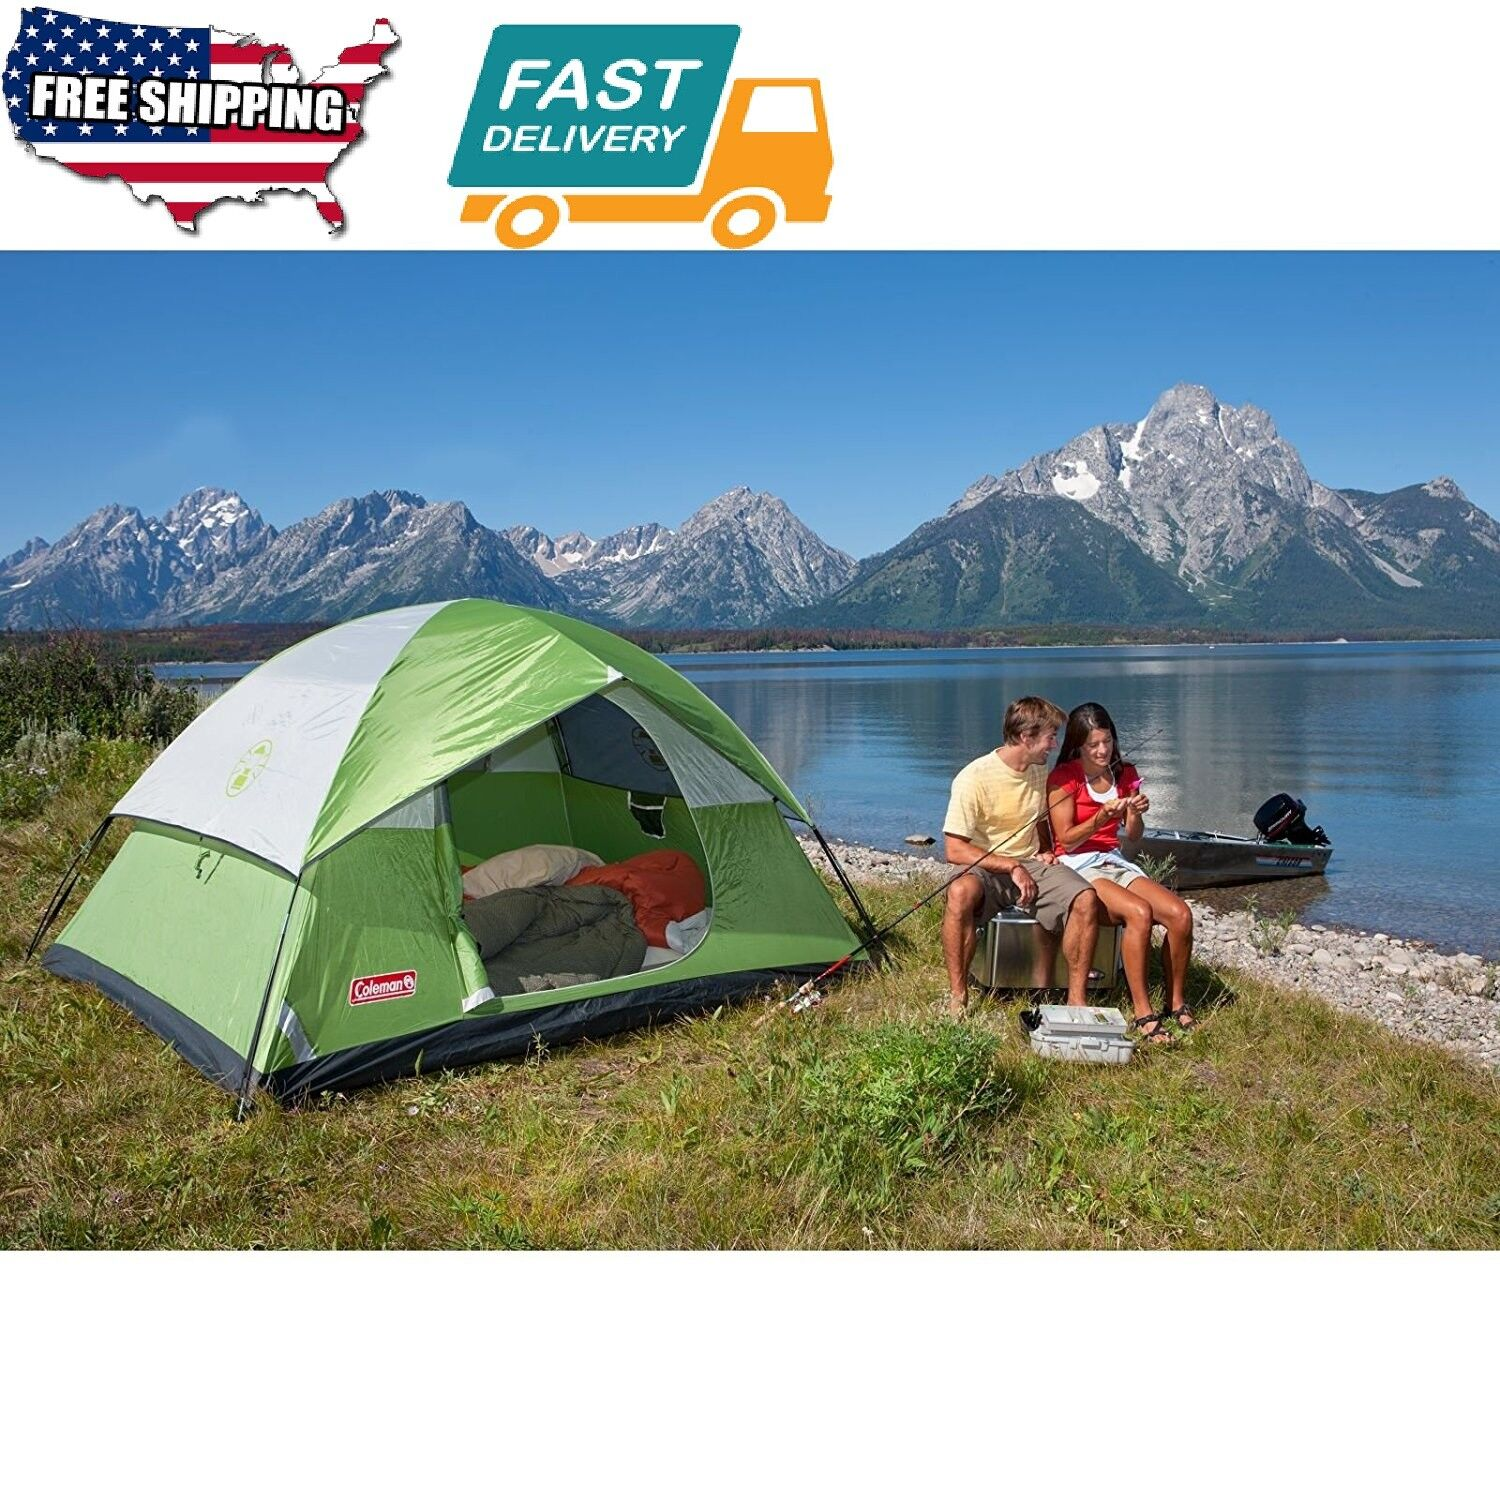 4 Person Fits Outdoor Sport Camping Hiking Family Tent Sundome Design Windows